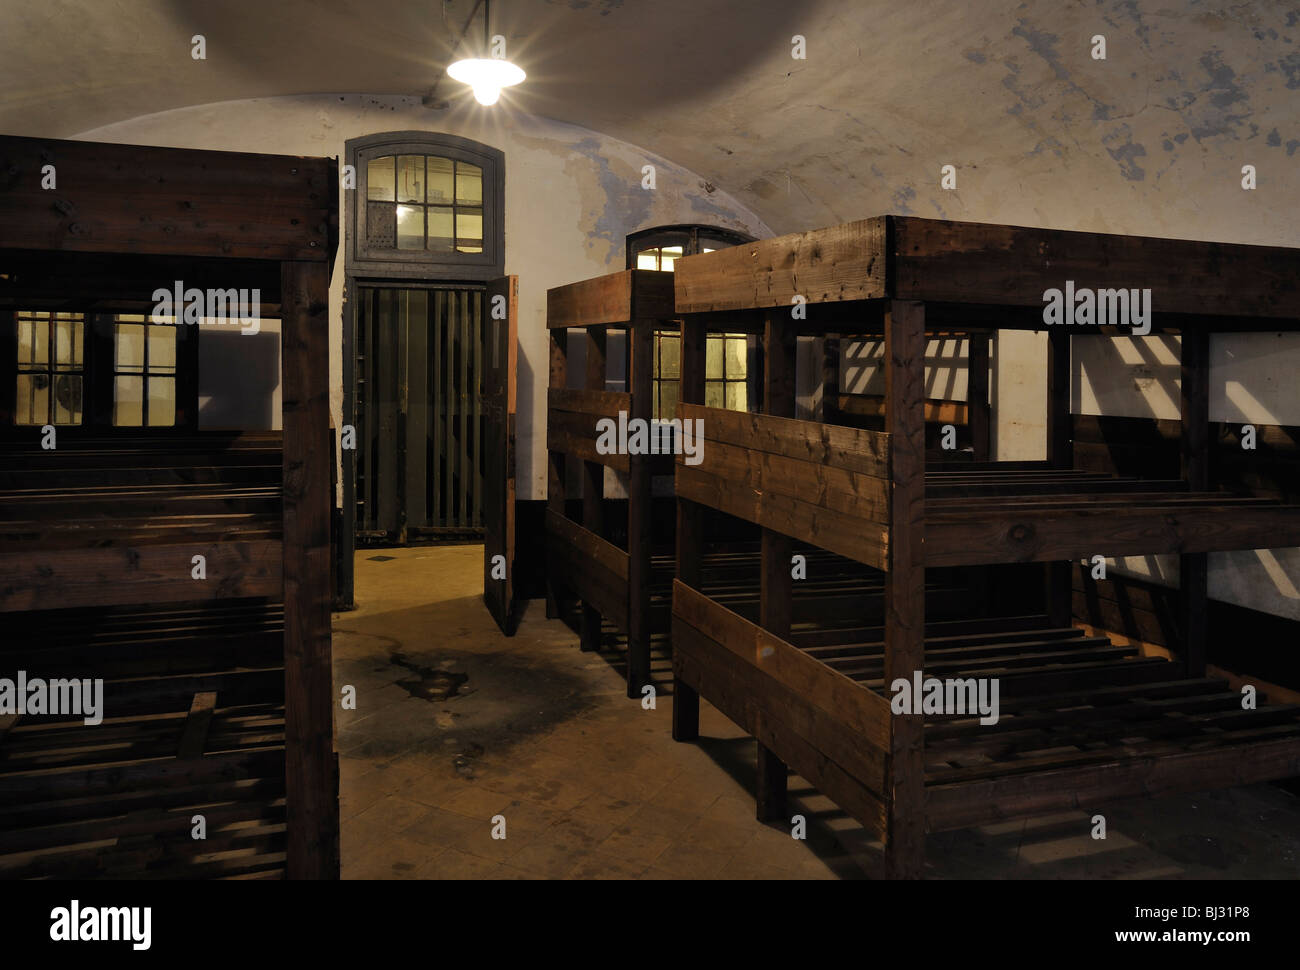 Bunk Beds In Barrack Room At The Fort Breendonk Second World War